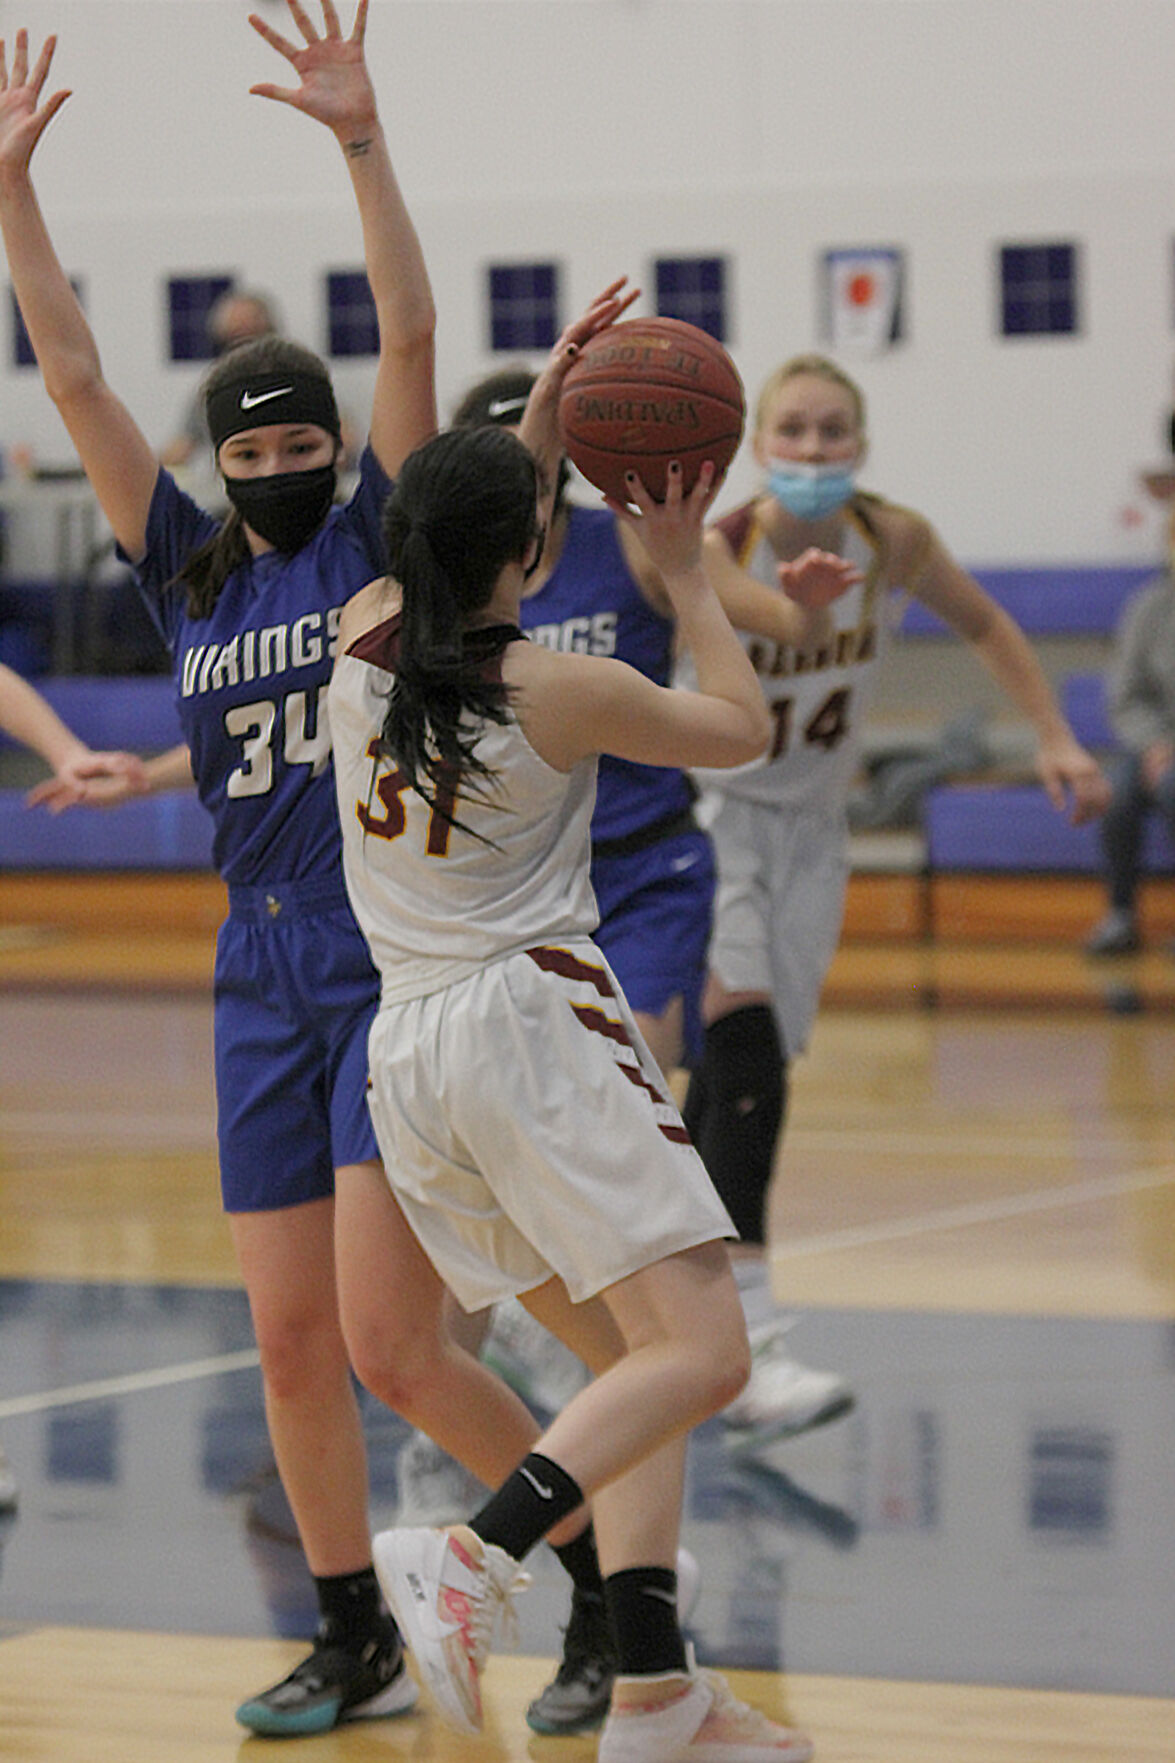 Lady Bombers continue to struggle